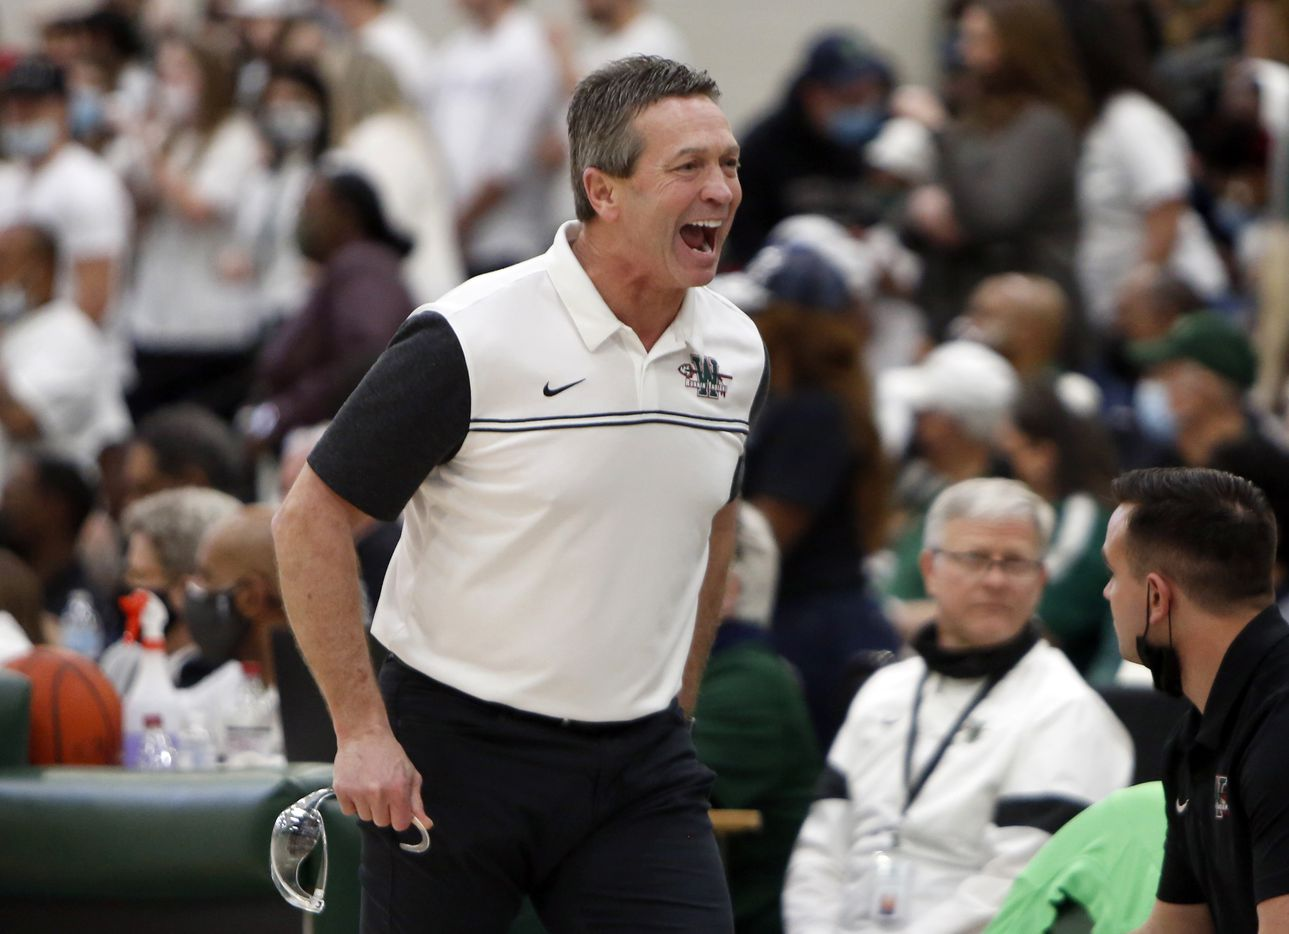 Waxahachie head coach Greg Gober reacts after a first half score in their game against Duncanville. The two teams played their Class 6A Region ll boys final  playoff basketball game at Waxahachie High School in Waxahachie on March 5, 2021. (Steve Hamm/ Special Contributor)